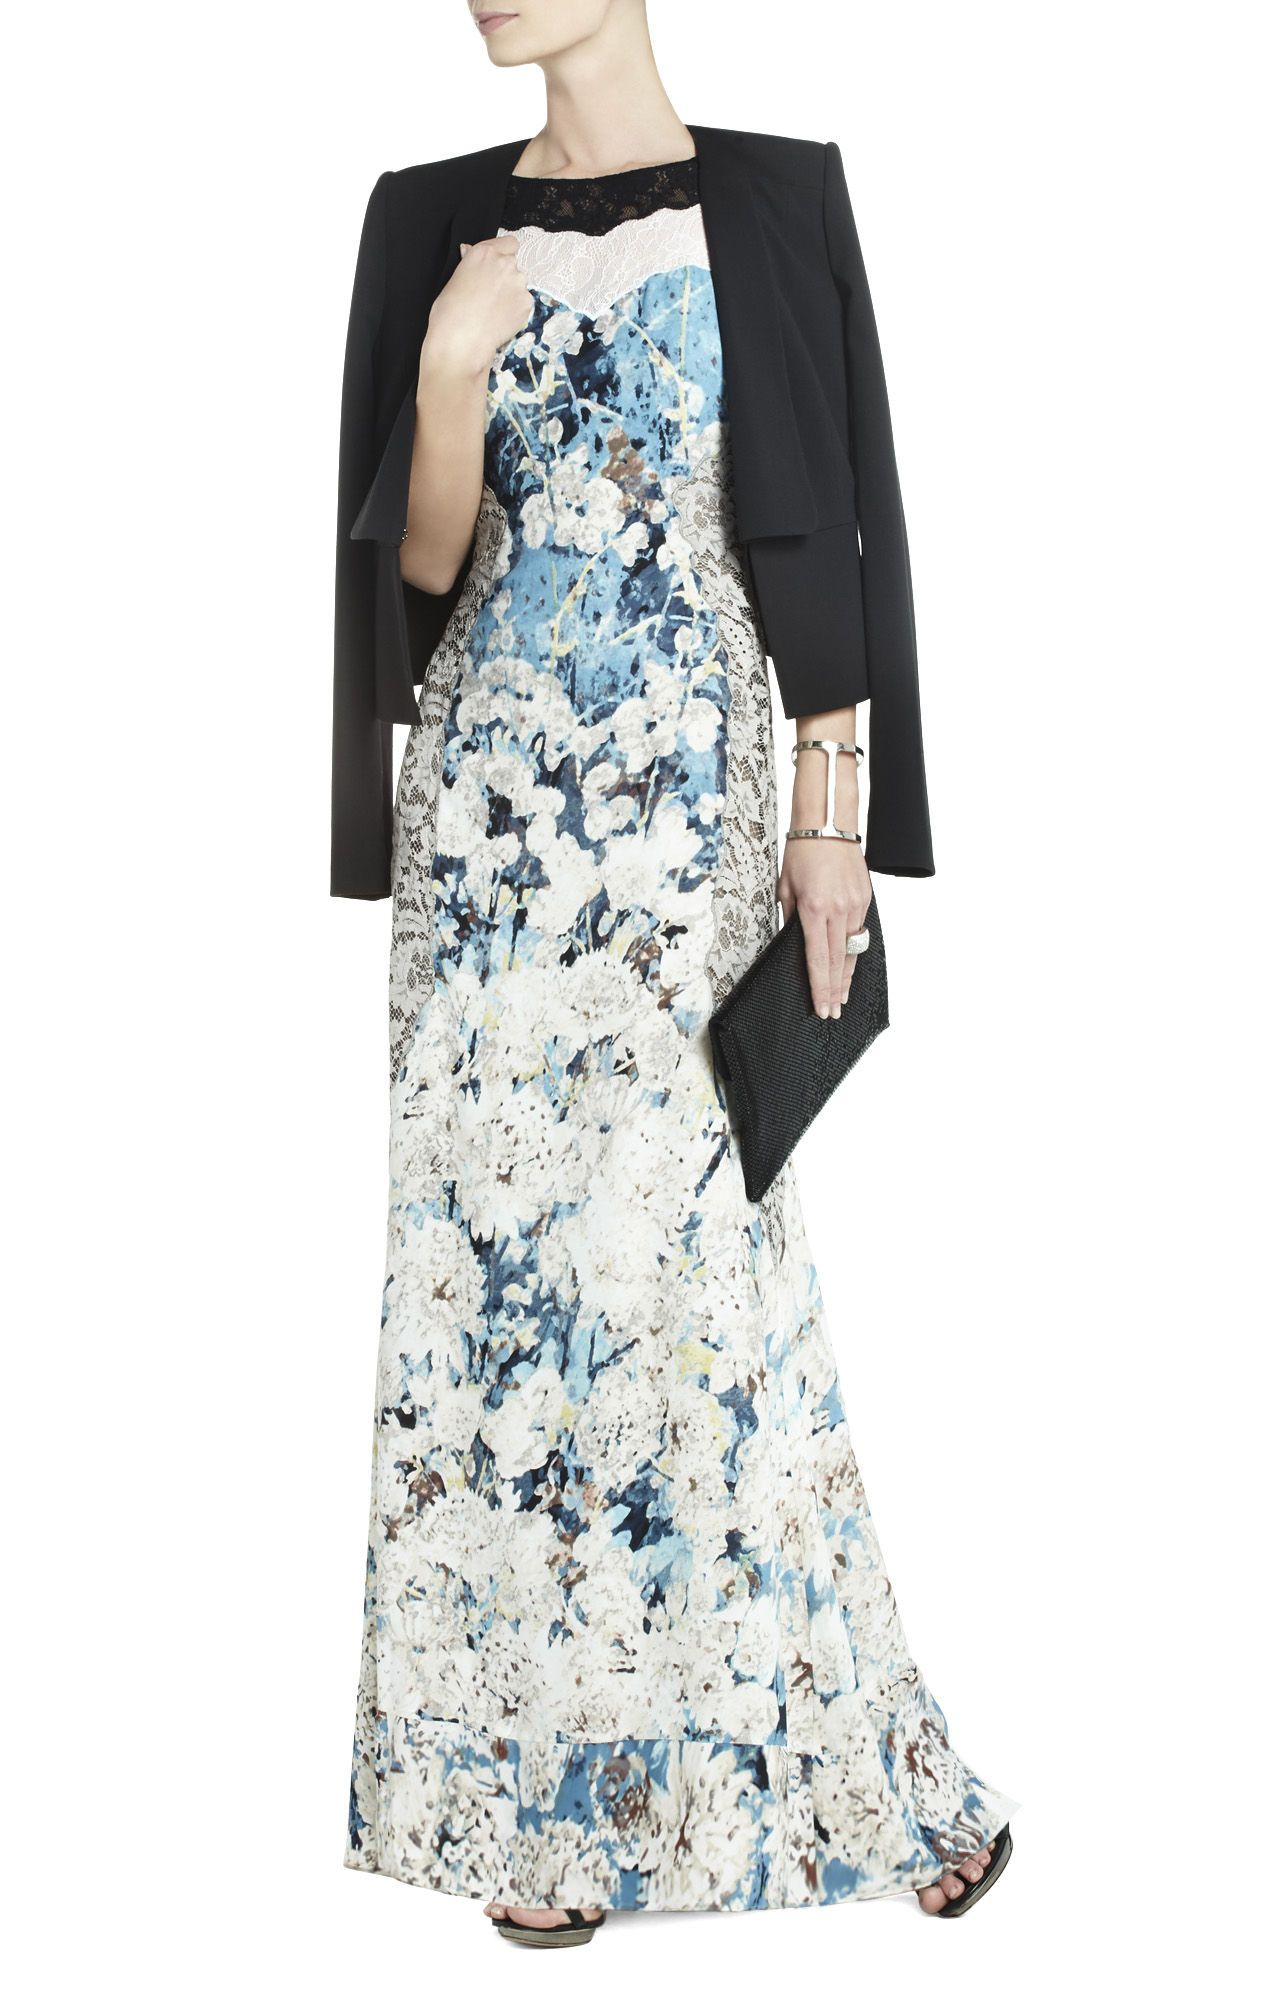 What to wear over a sleeveless dress to a wedding  Provence Sleeveless OpenBack Gown  BCBG  la moda  Pinterest